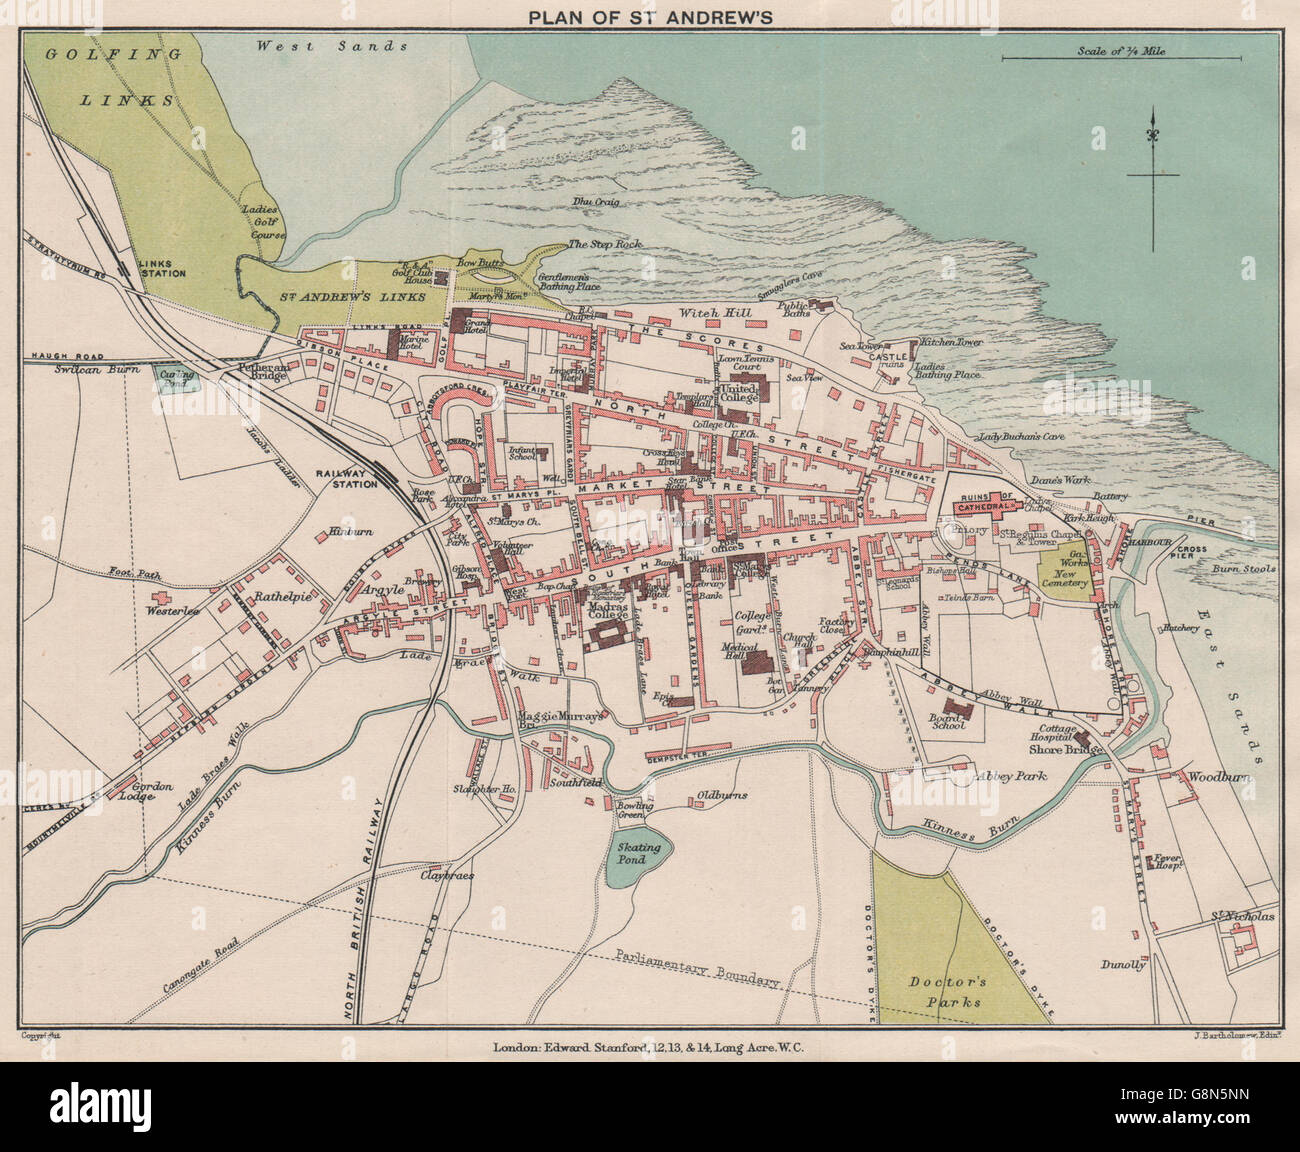 ST ANDREWS. Golf links. Vintage town city plan. Scotland ... on golf austria map, golf italy map, golf spain map, golf in edinburgh, golf in london, battle of culloden map, scotch whisky map, british open map, golf new zealand map, st andrews map, golf portugal map, golf course map, fife map, golf usa map,